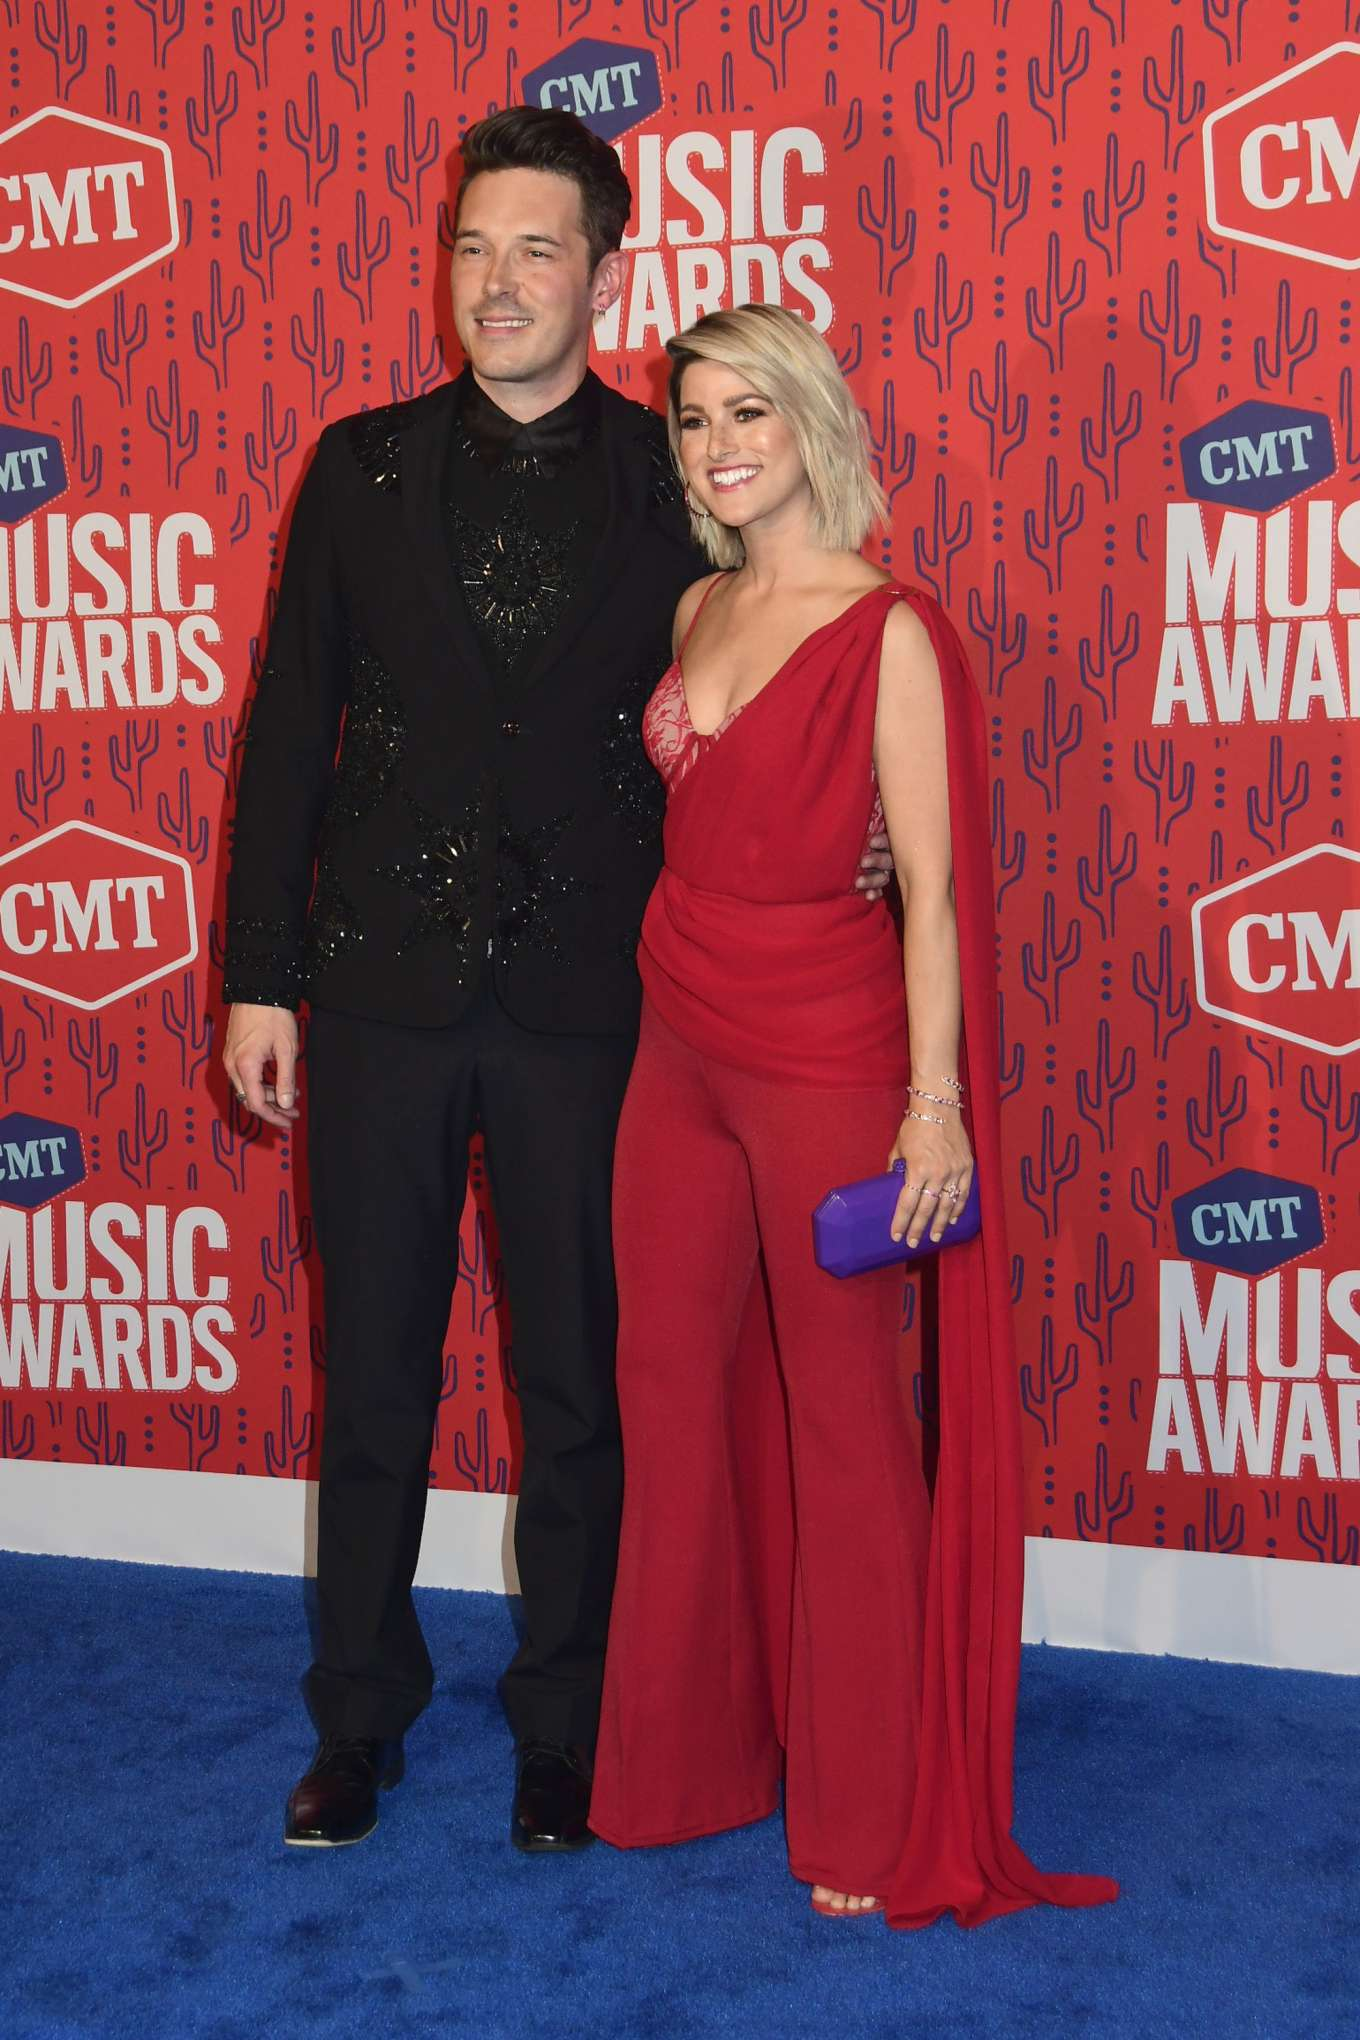 Cassadee Pope 2019 : Cassadee Pope: 2019 CMT Music Awards-31